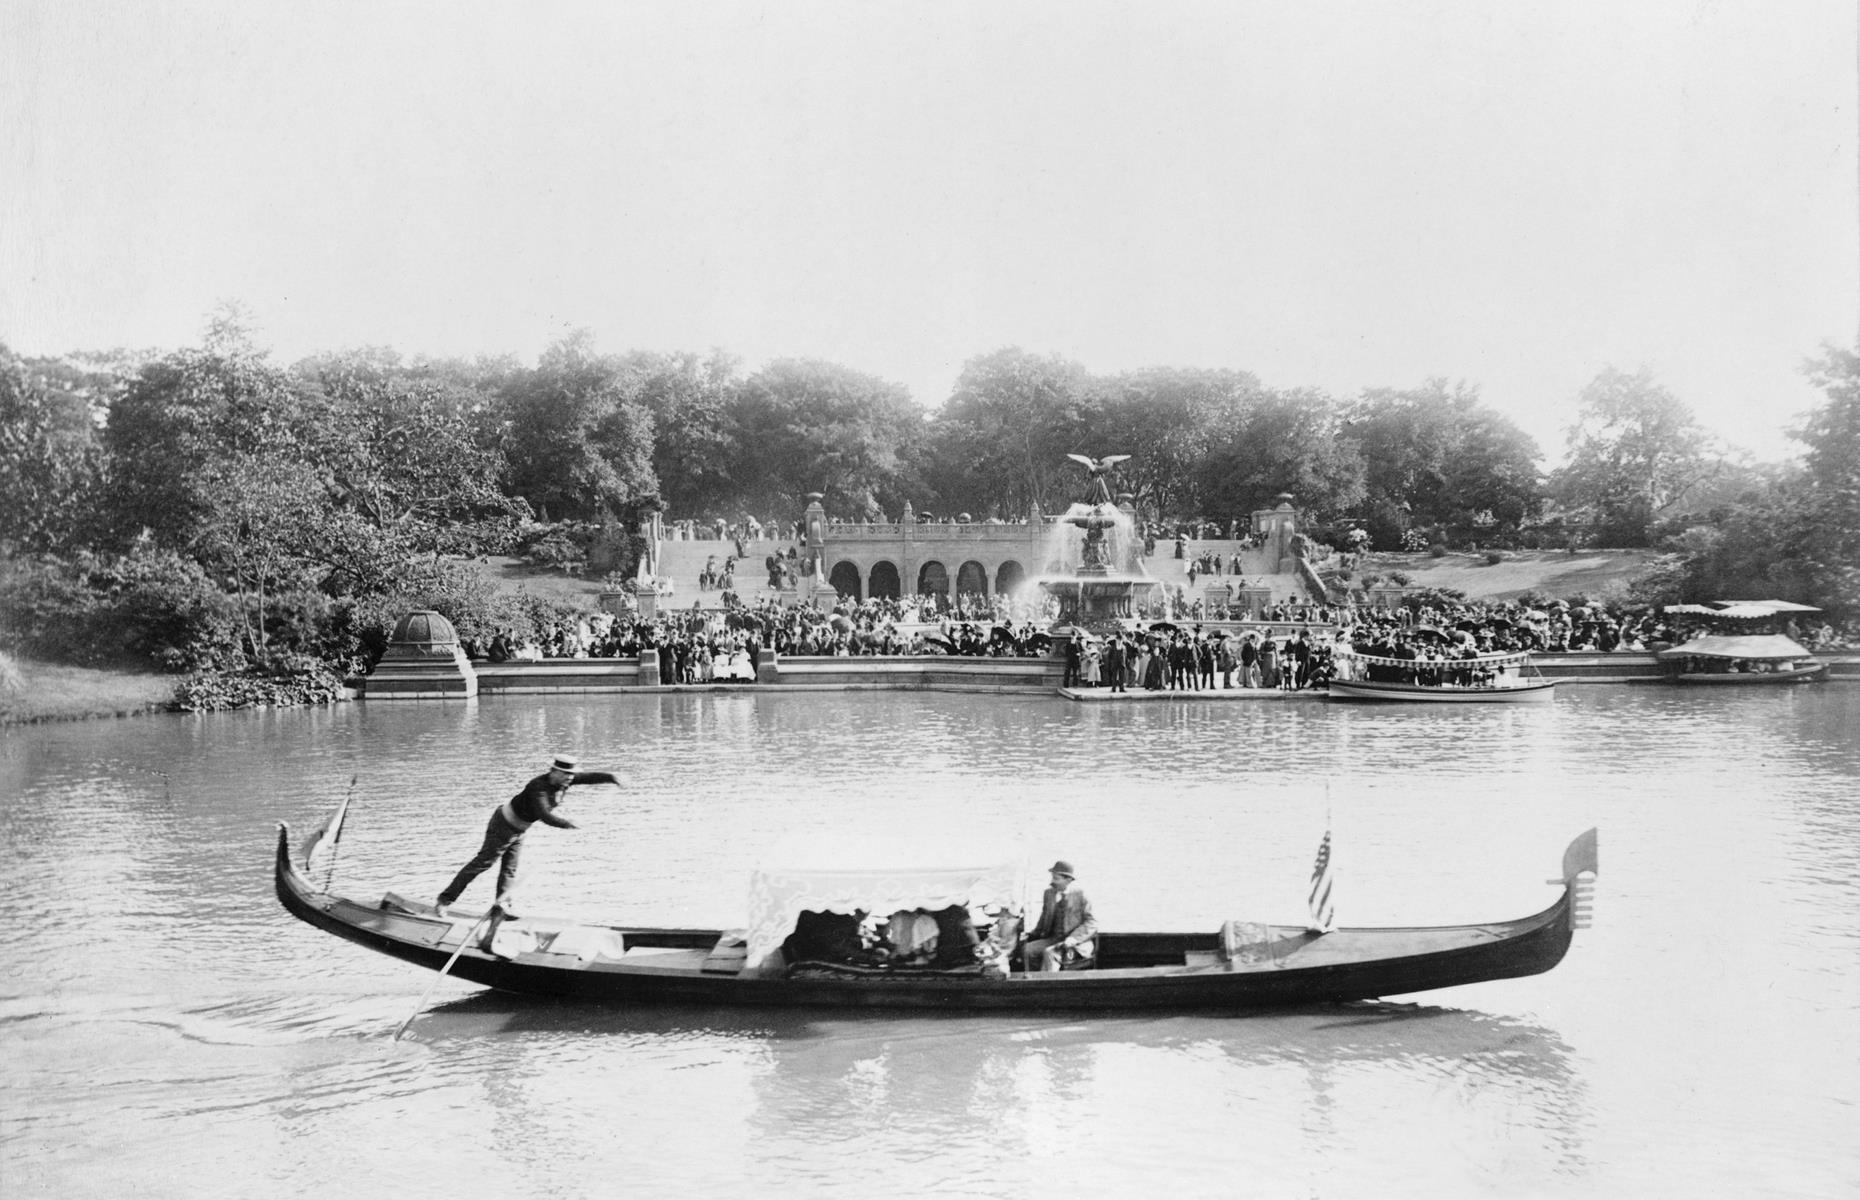 Slide 10 of 51: When Central Park officially opened in 1876 it became instantly popular with New Yorkers, with activities including gondolier trips on the lake (pictured here in 1894), carriage rides and model yacht racing favored by early visitors. The 840-acre park is one of the world's topattractions today and received a whopping42 million visitors last year.